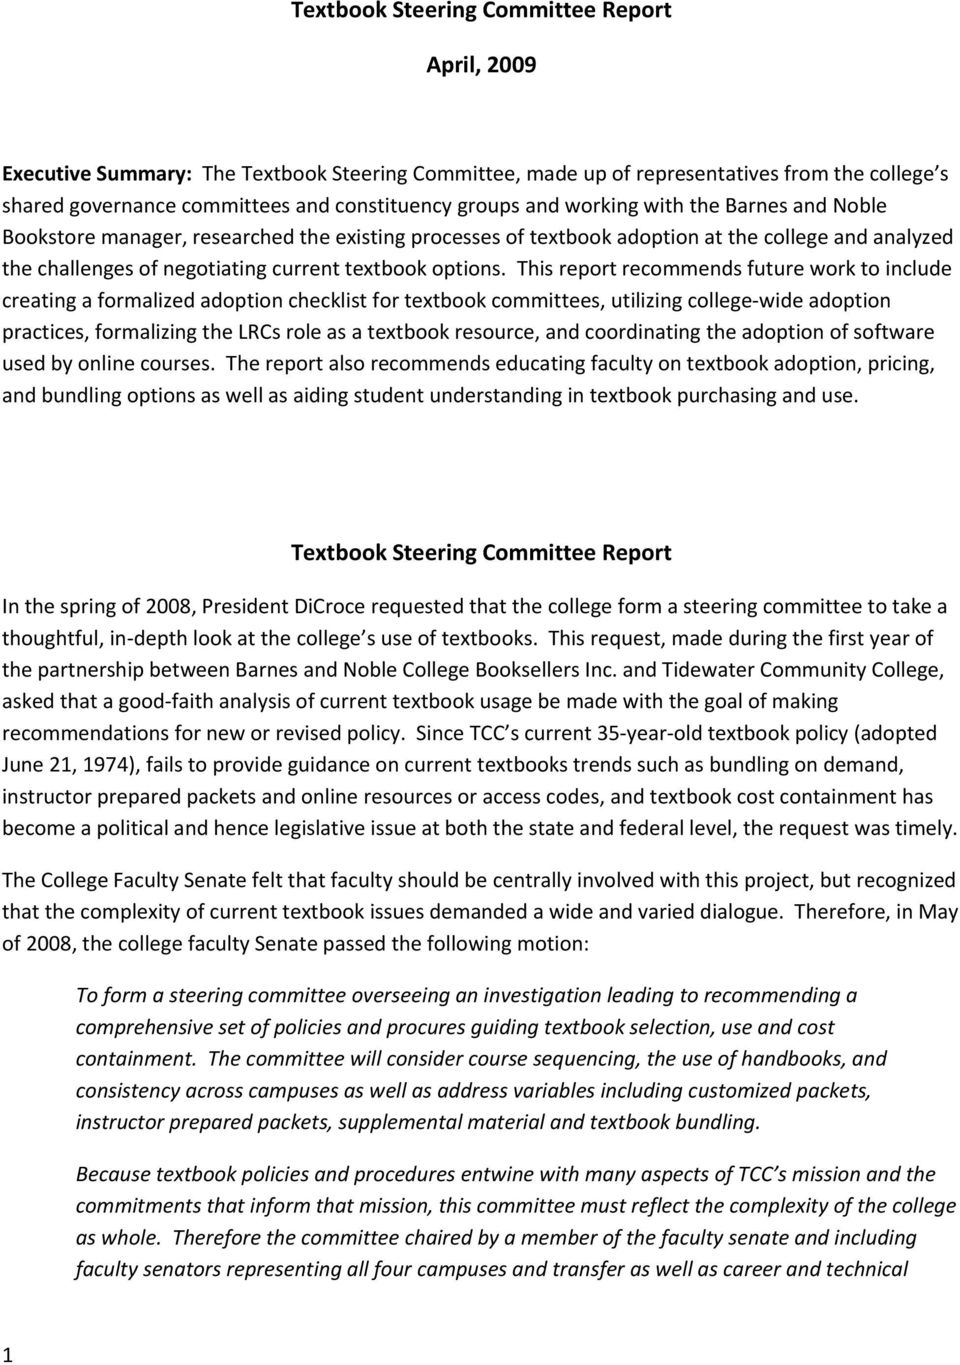 This report recommends future work to include creating a formalized adoption checklist for textbook committees, utilizing college wide adoption practices, formalizing the LRCs role as a textbook